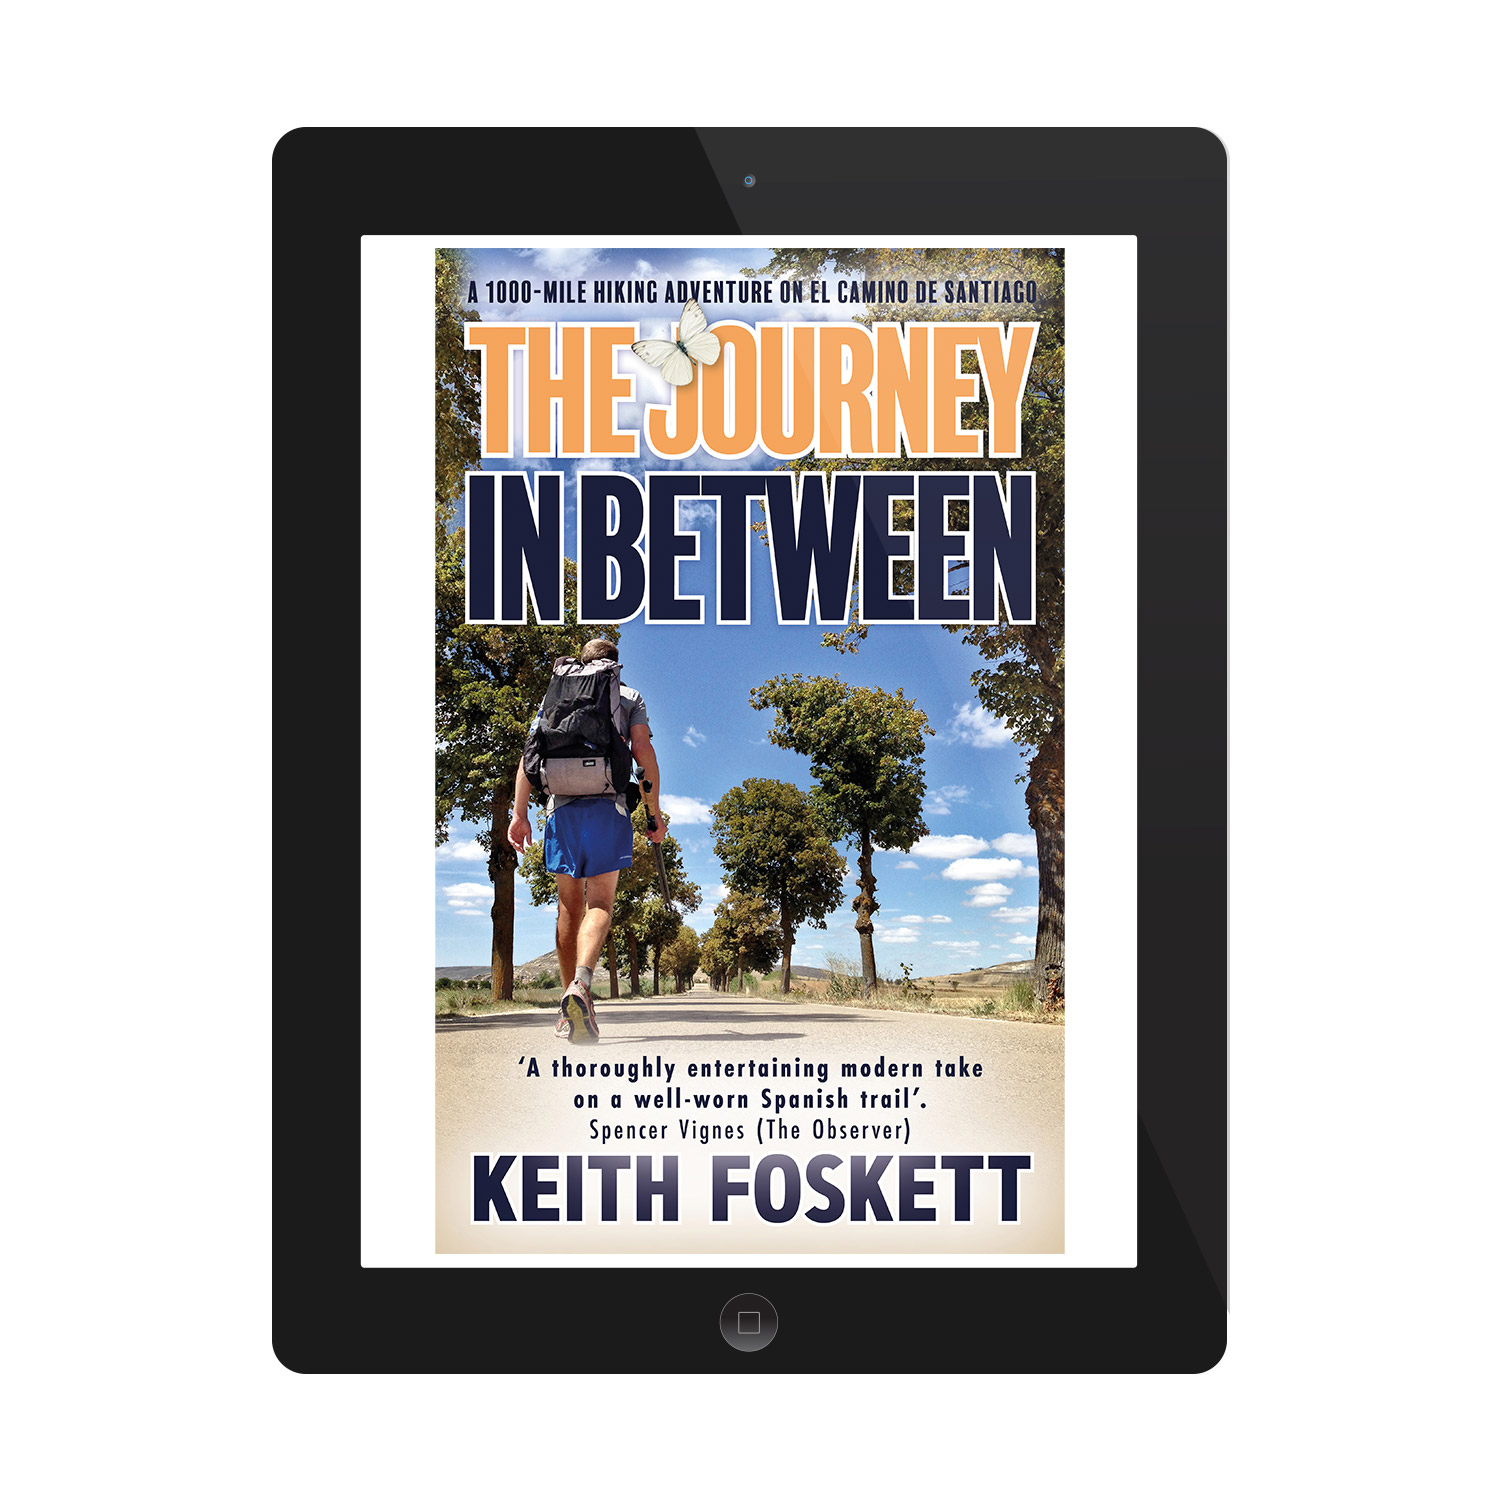 'The Journey In Between' is an excellent hiking memoir, about one man's trek along the El Camino De Santiago. The author is Keith Foskett. The book cover was designed by Mark Thomas, of coverness.com. To find out more about my book design services, please visit www.coverness.com.